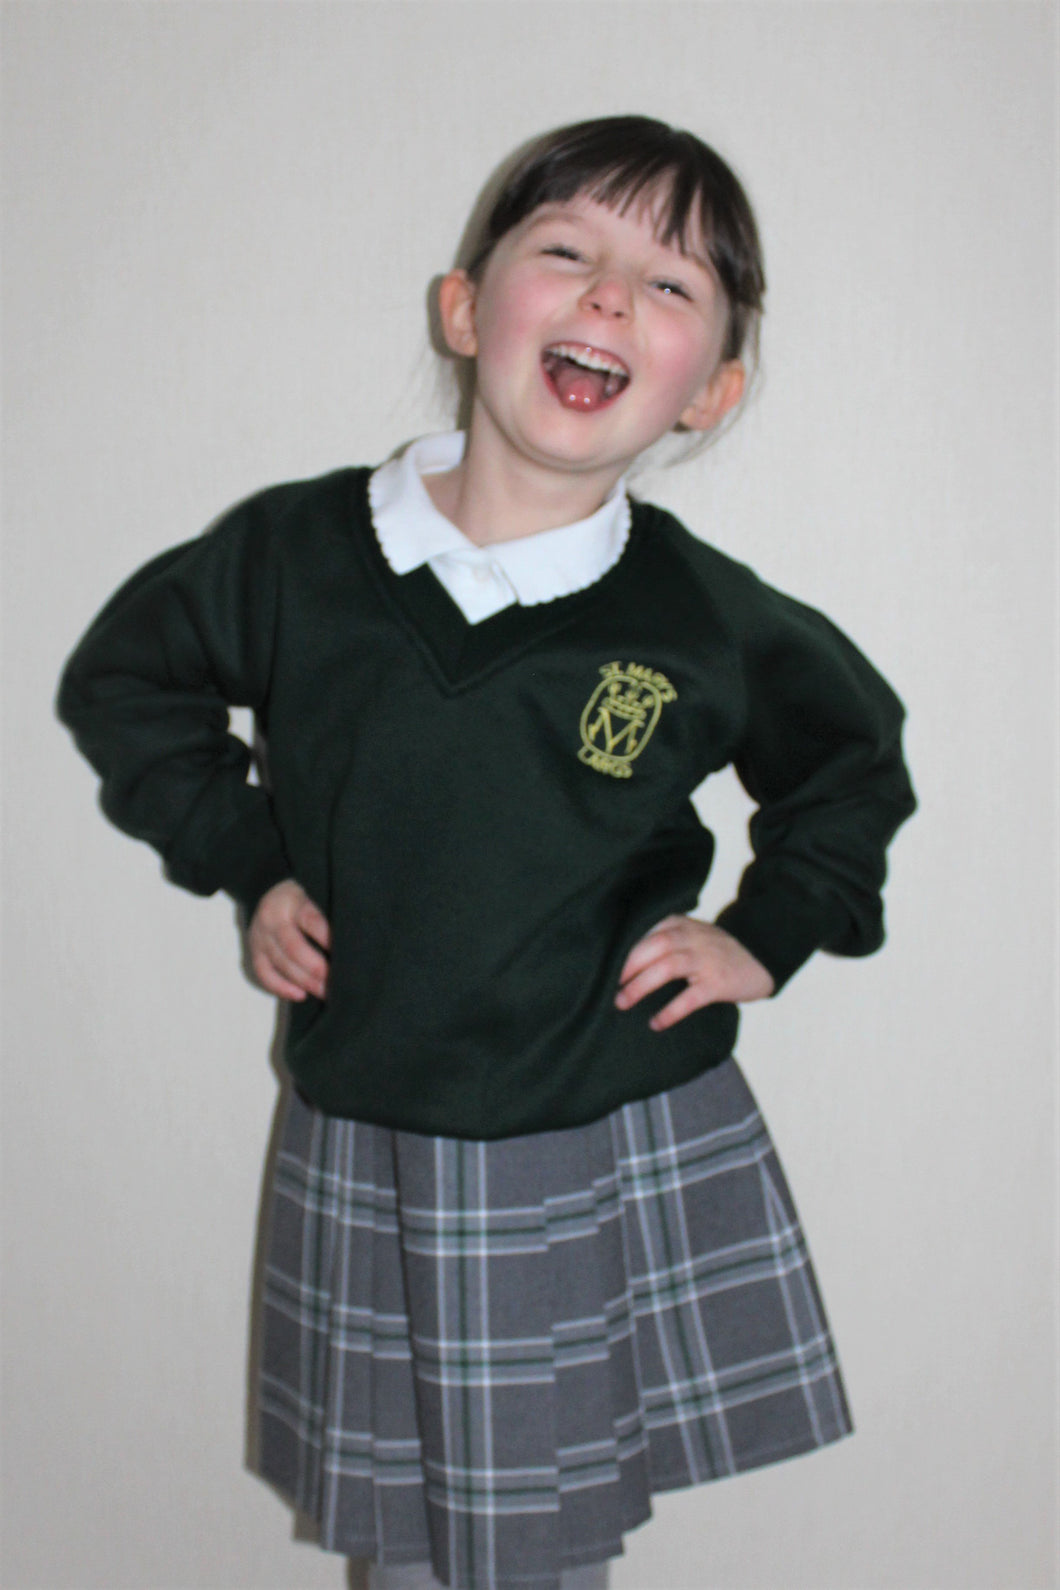 V-Neck jumper for St Mary's Primary in Largs, long lasting colours, affordable, bottle green, embroidered with badge